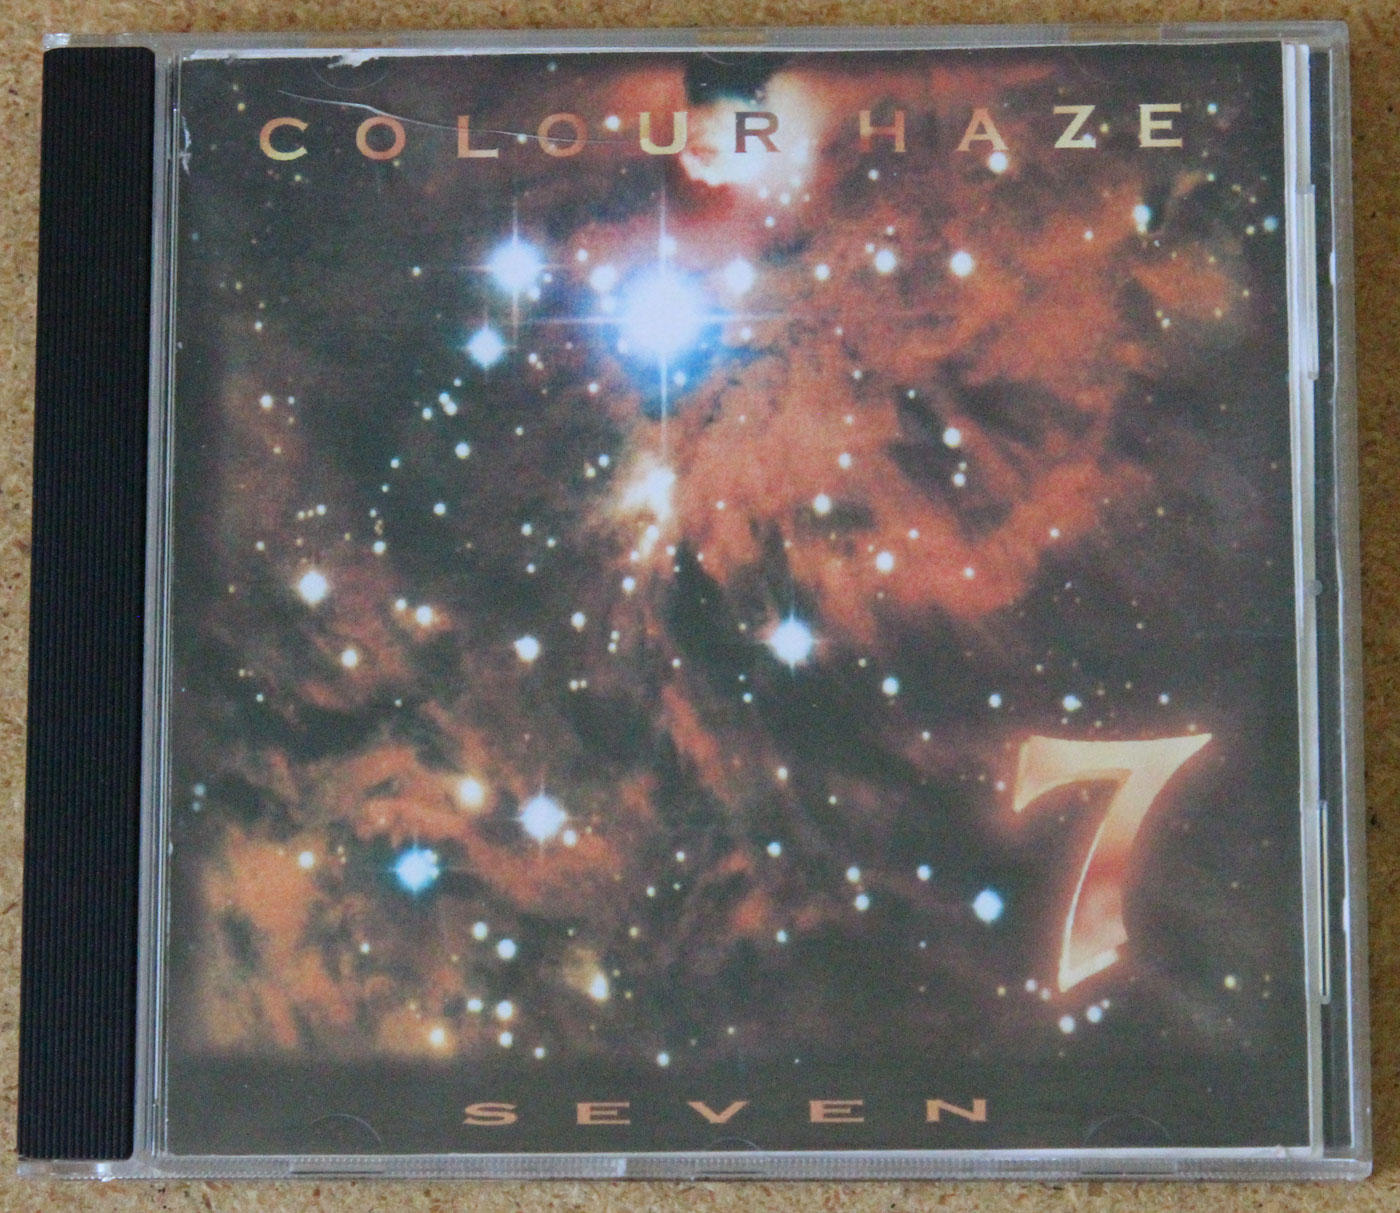 colour-haze-seven-cd-cover